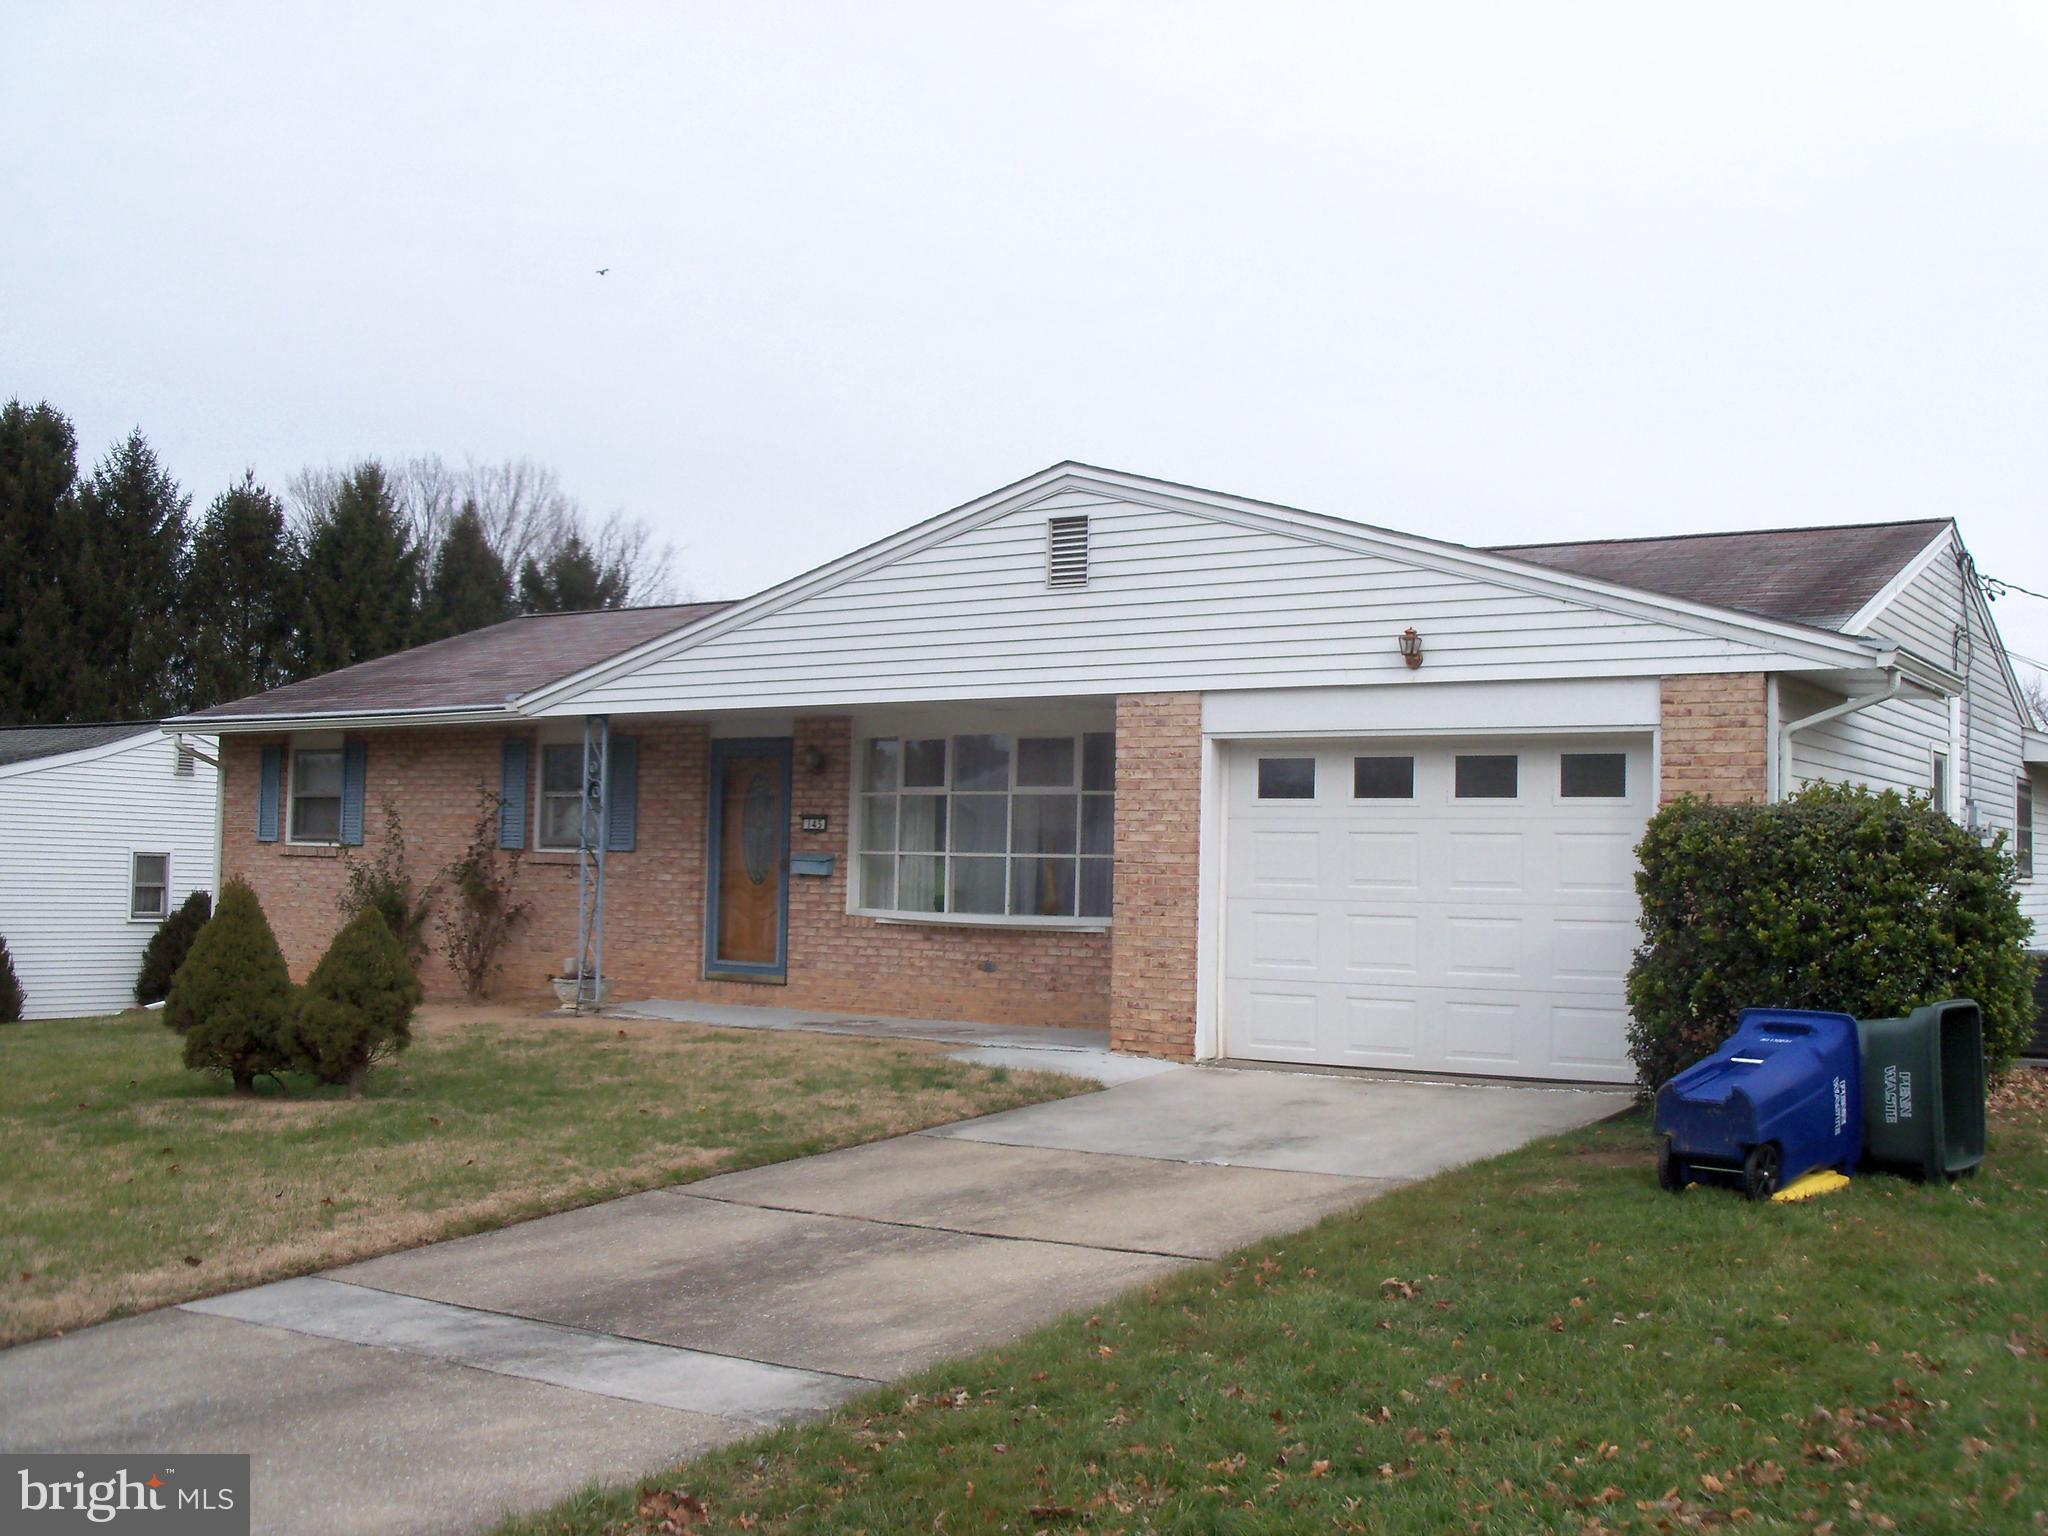 Windsor Park-Brick/Alum. Ranch featuring 3 Bedrm, 2 Bath  with nice size  Family  Rm w/Gas Fireplace.  Hardwood flooring under Living Rm, Dining Rm  and Bedroom carpet  Full Basement, C/A.  Shed Open back yard.  Front porch,  rear patio off Family Rm. Convenient to major highways, shopping, restaurants and park.  Don;t miss!  One year AHS Warranty to buyer.